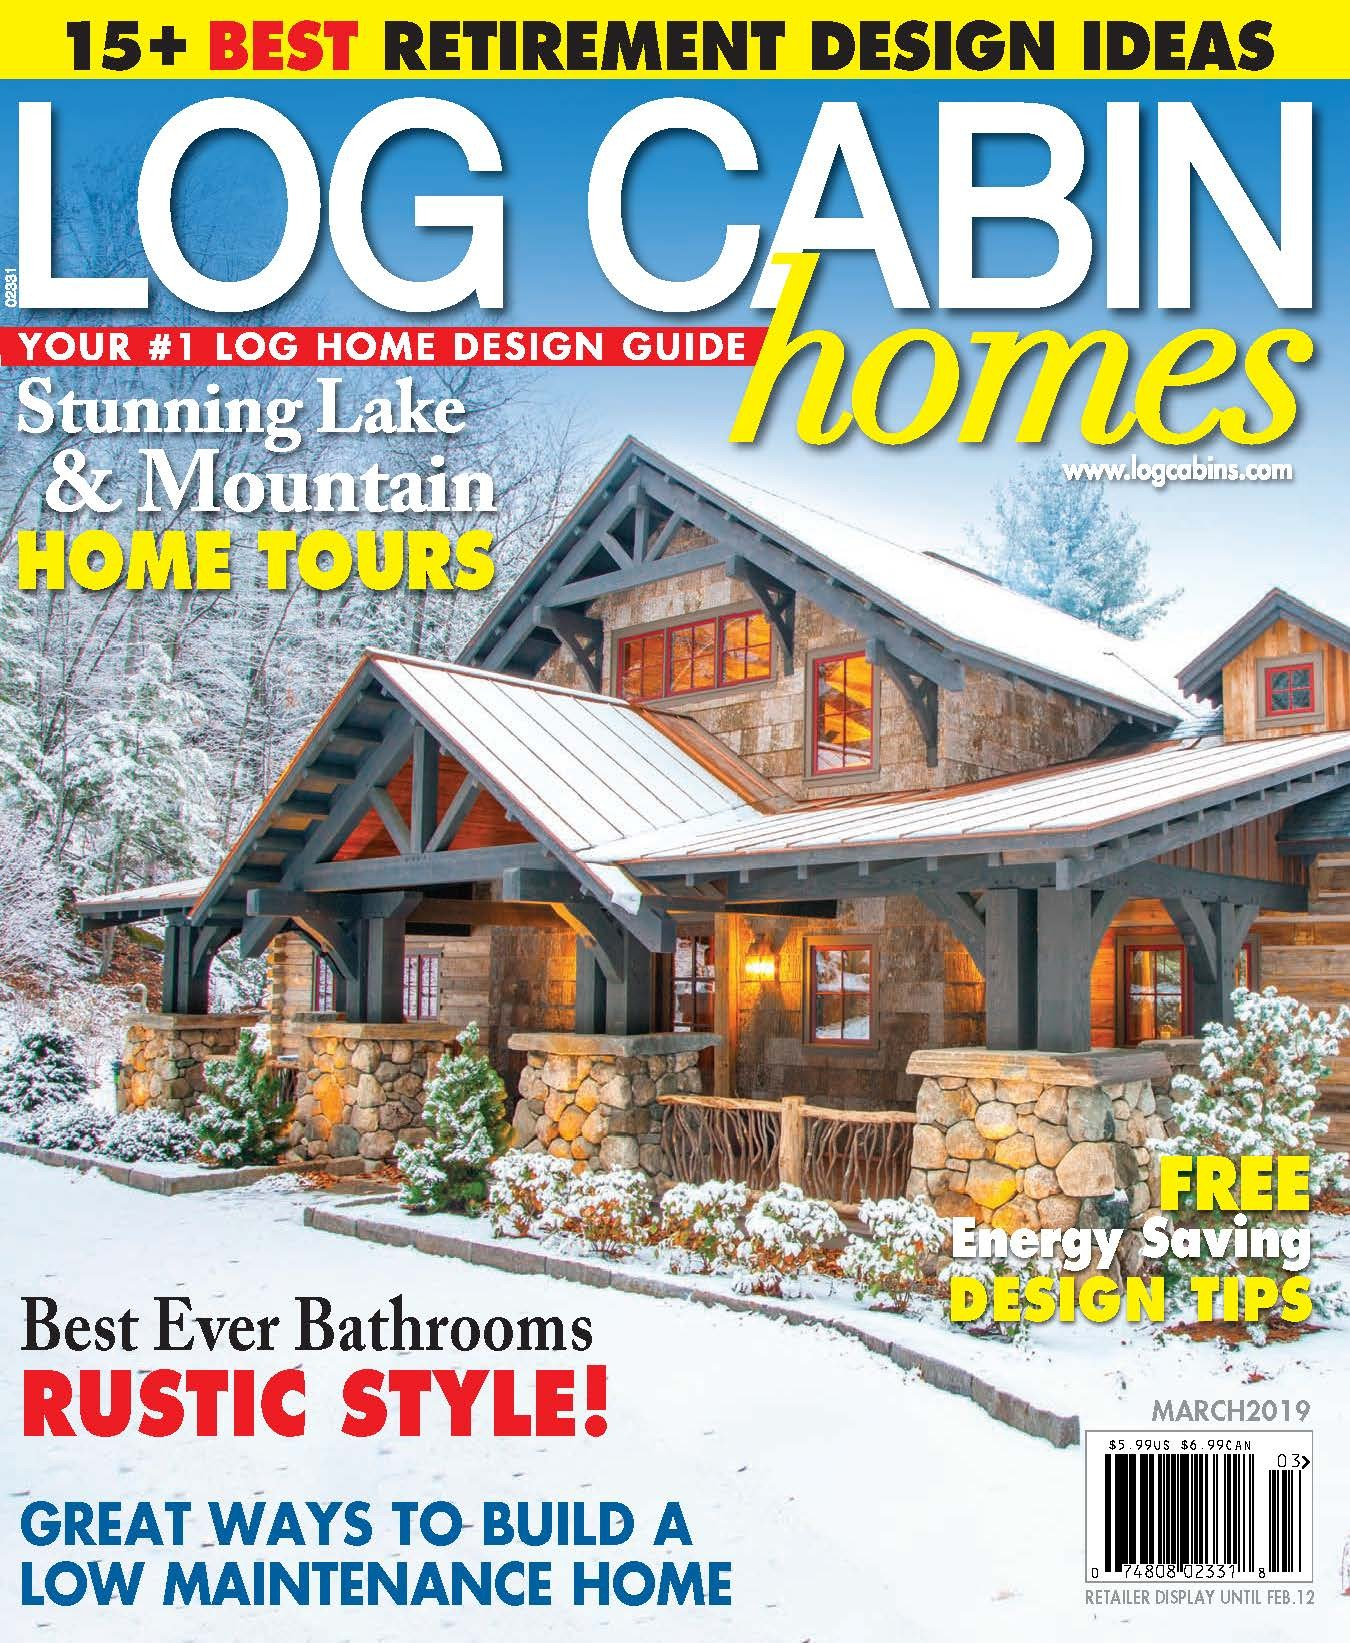 Log Cabin Homes - March 2019 Cover